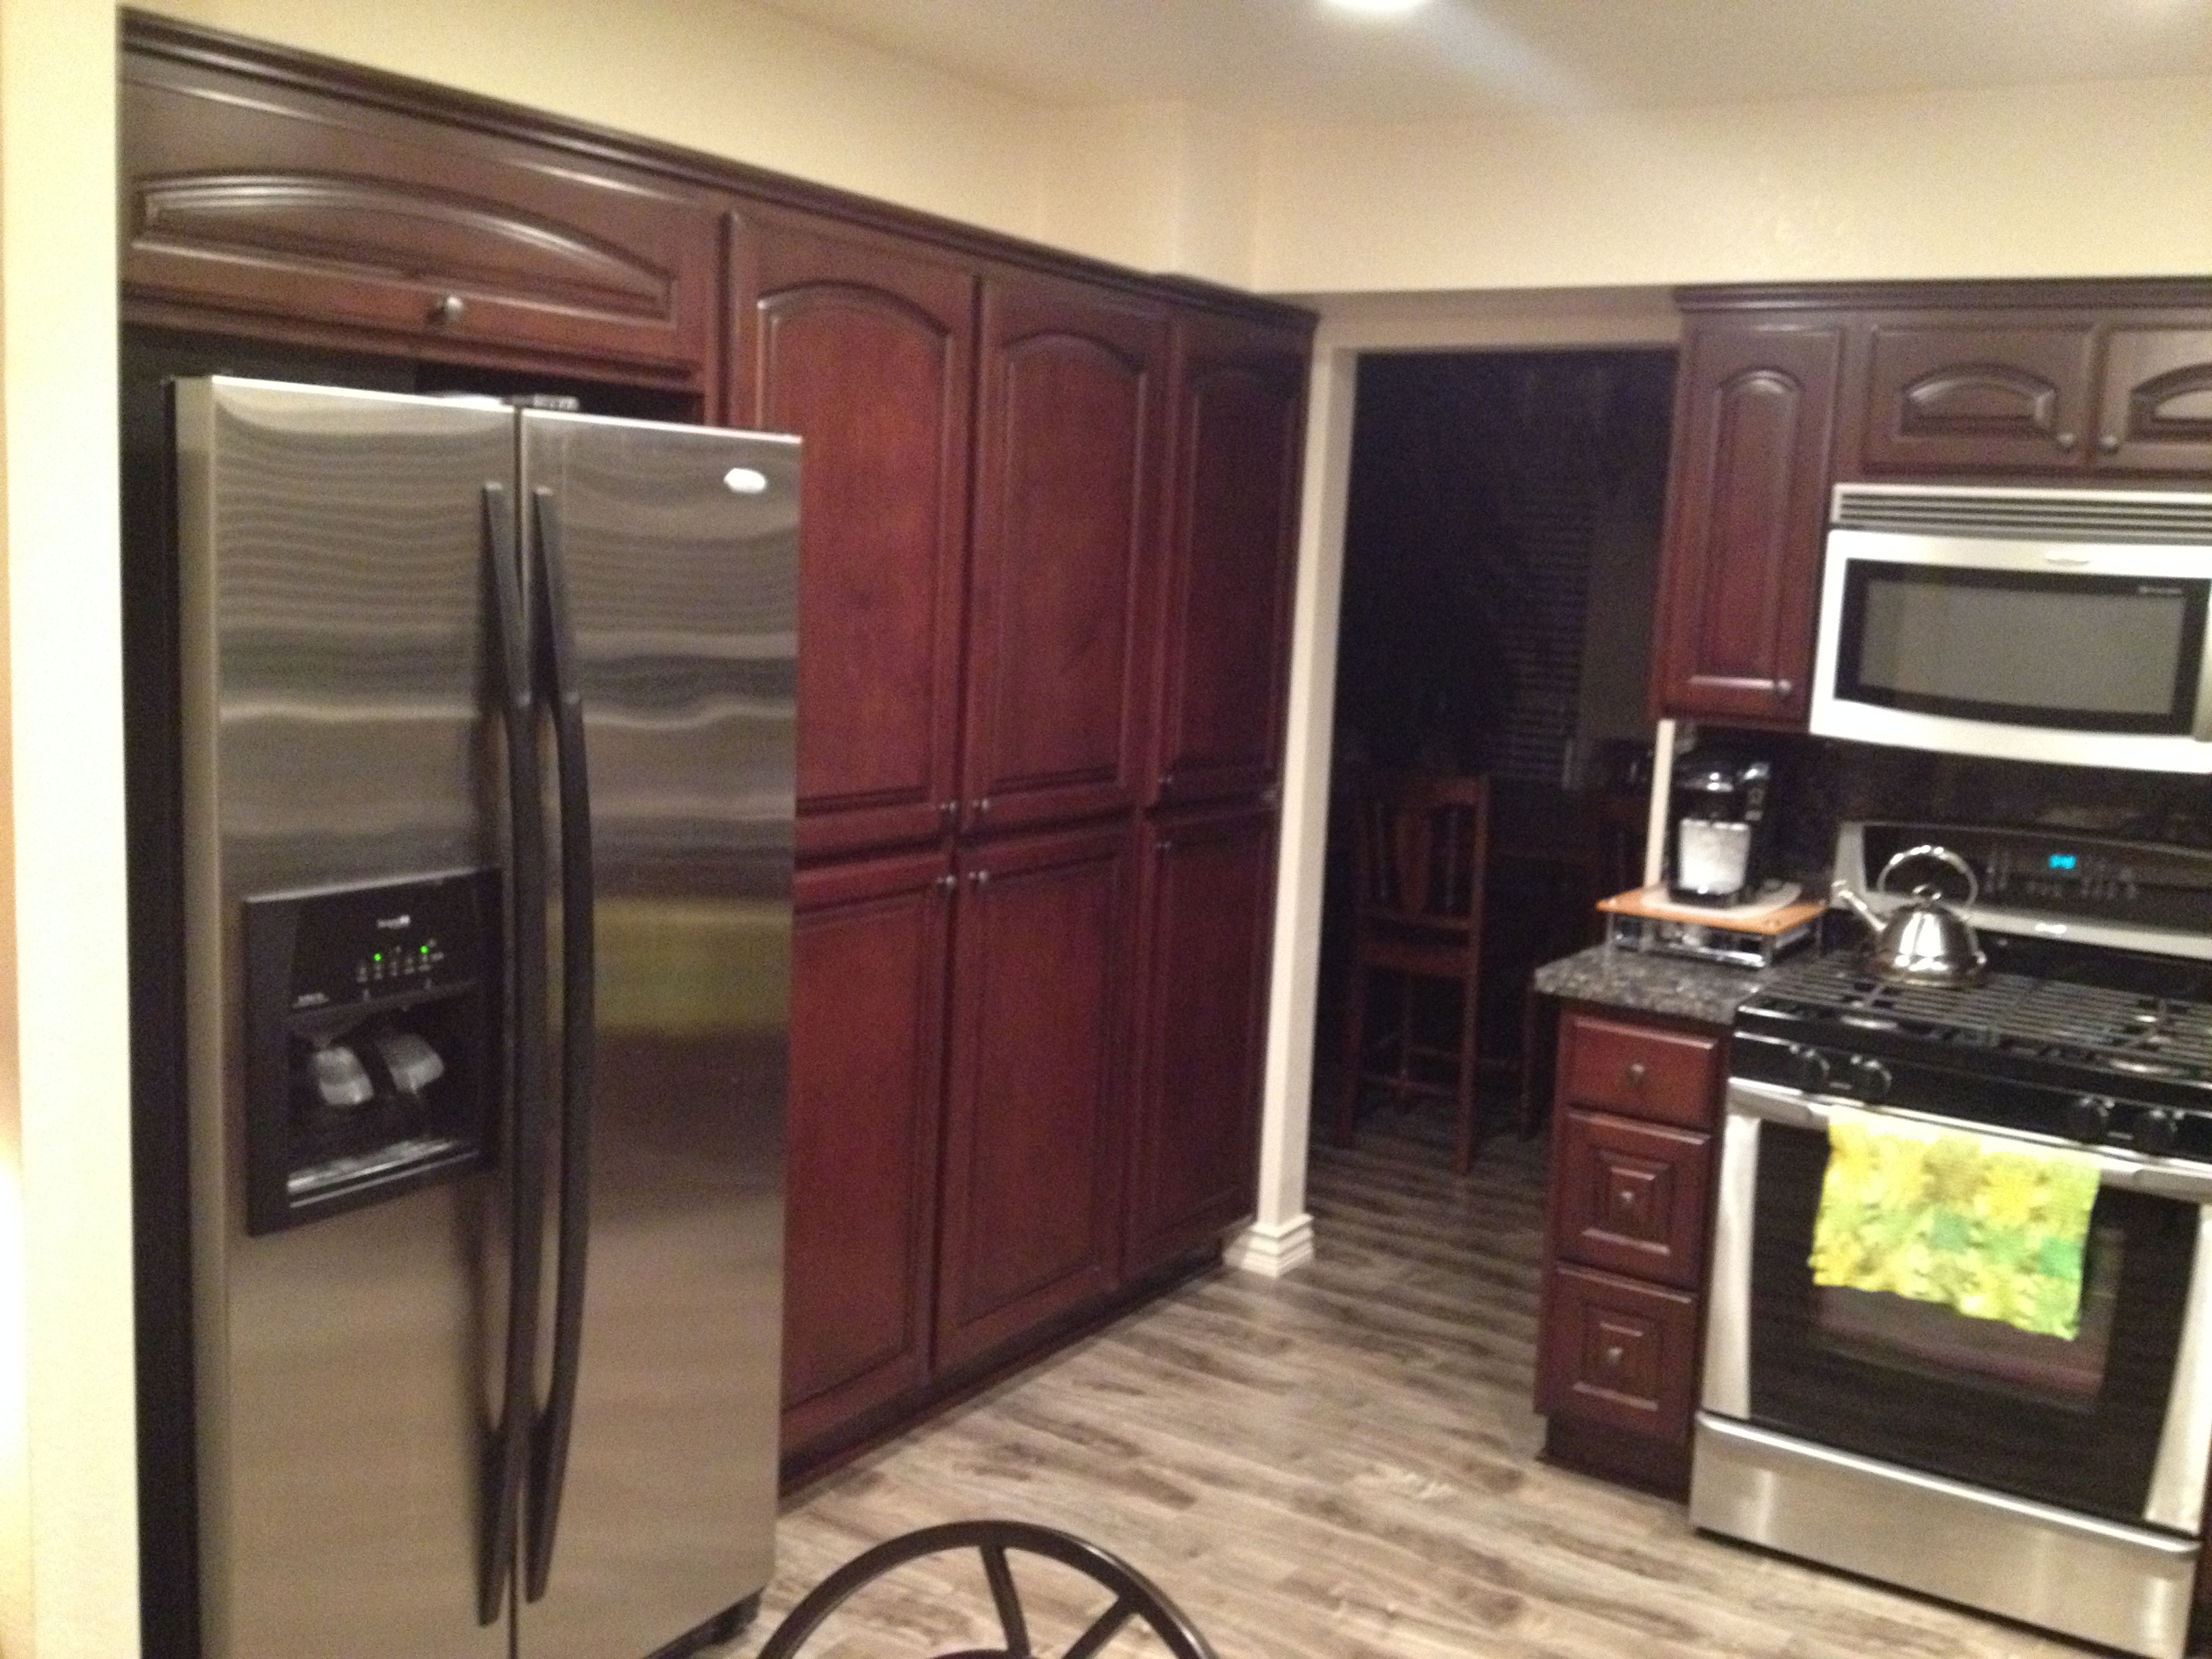 Sawyer kitchen remodel in Temecula CA